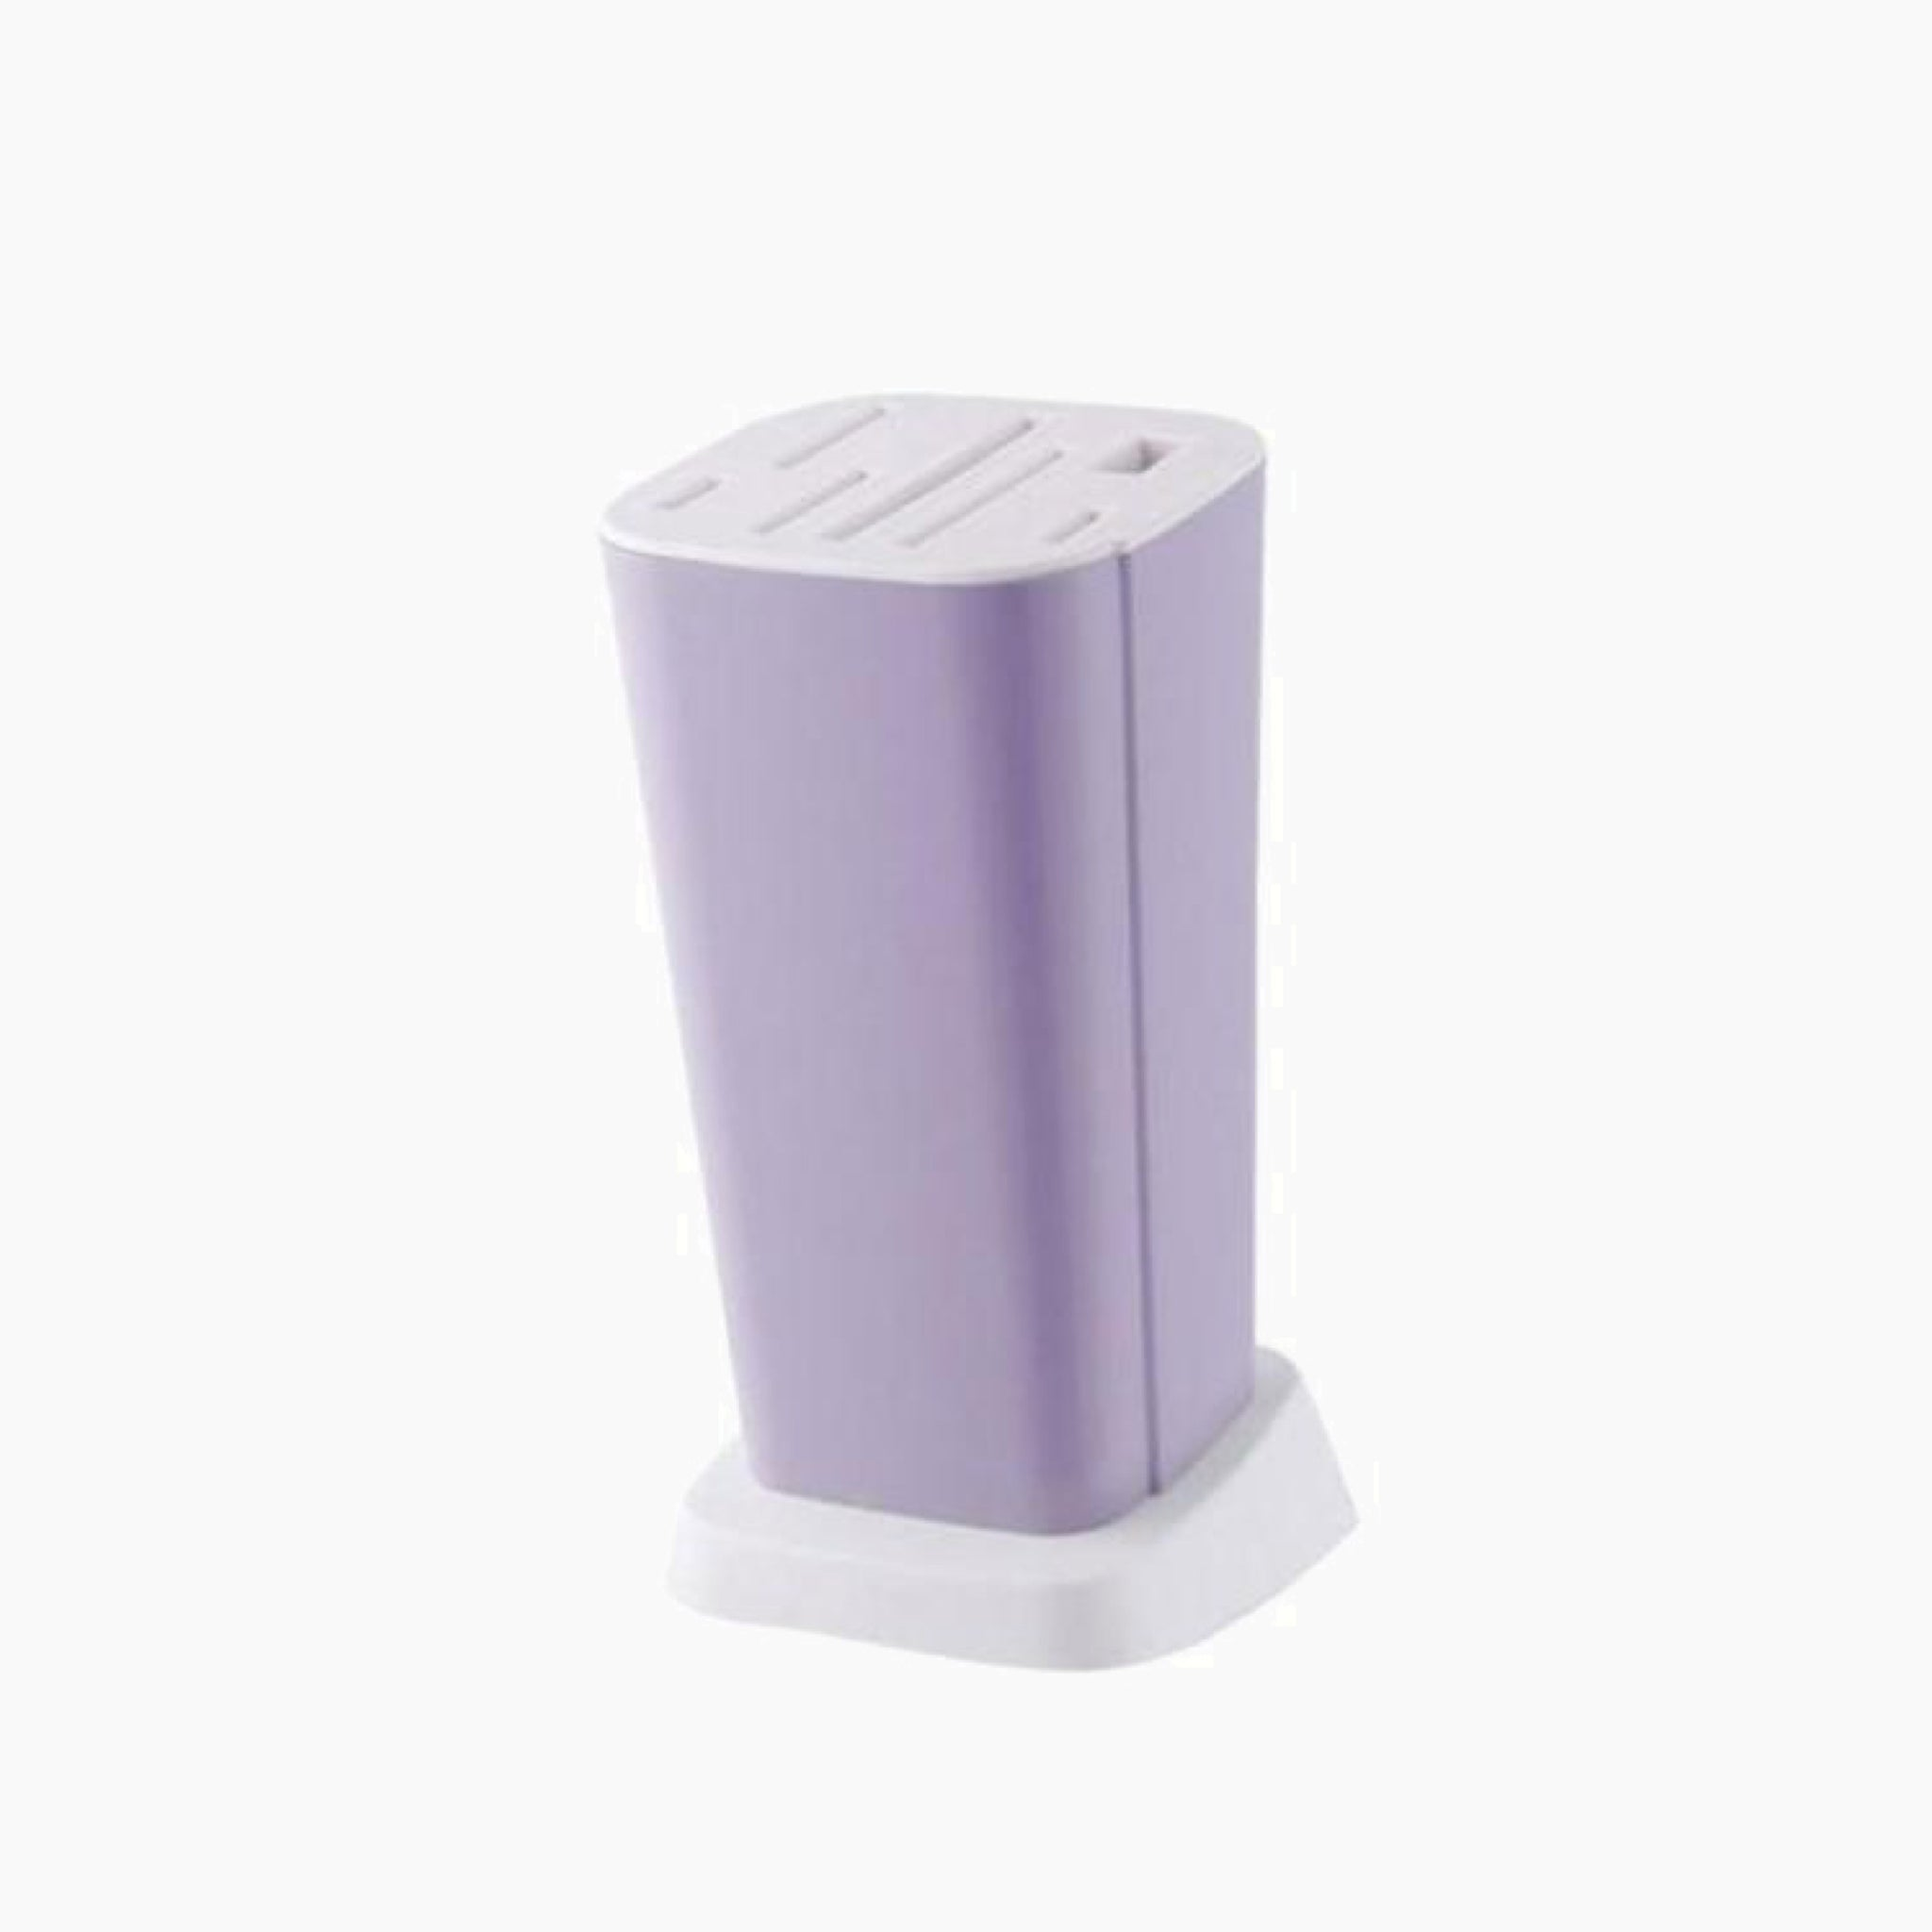 Purple Kitchen Knife Holder Multifunction Plastic Storage Rack Block Stand Mount Stands for Knives Trend